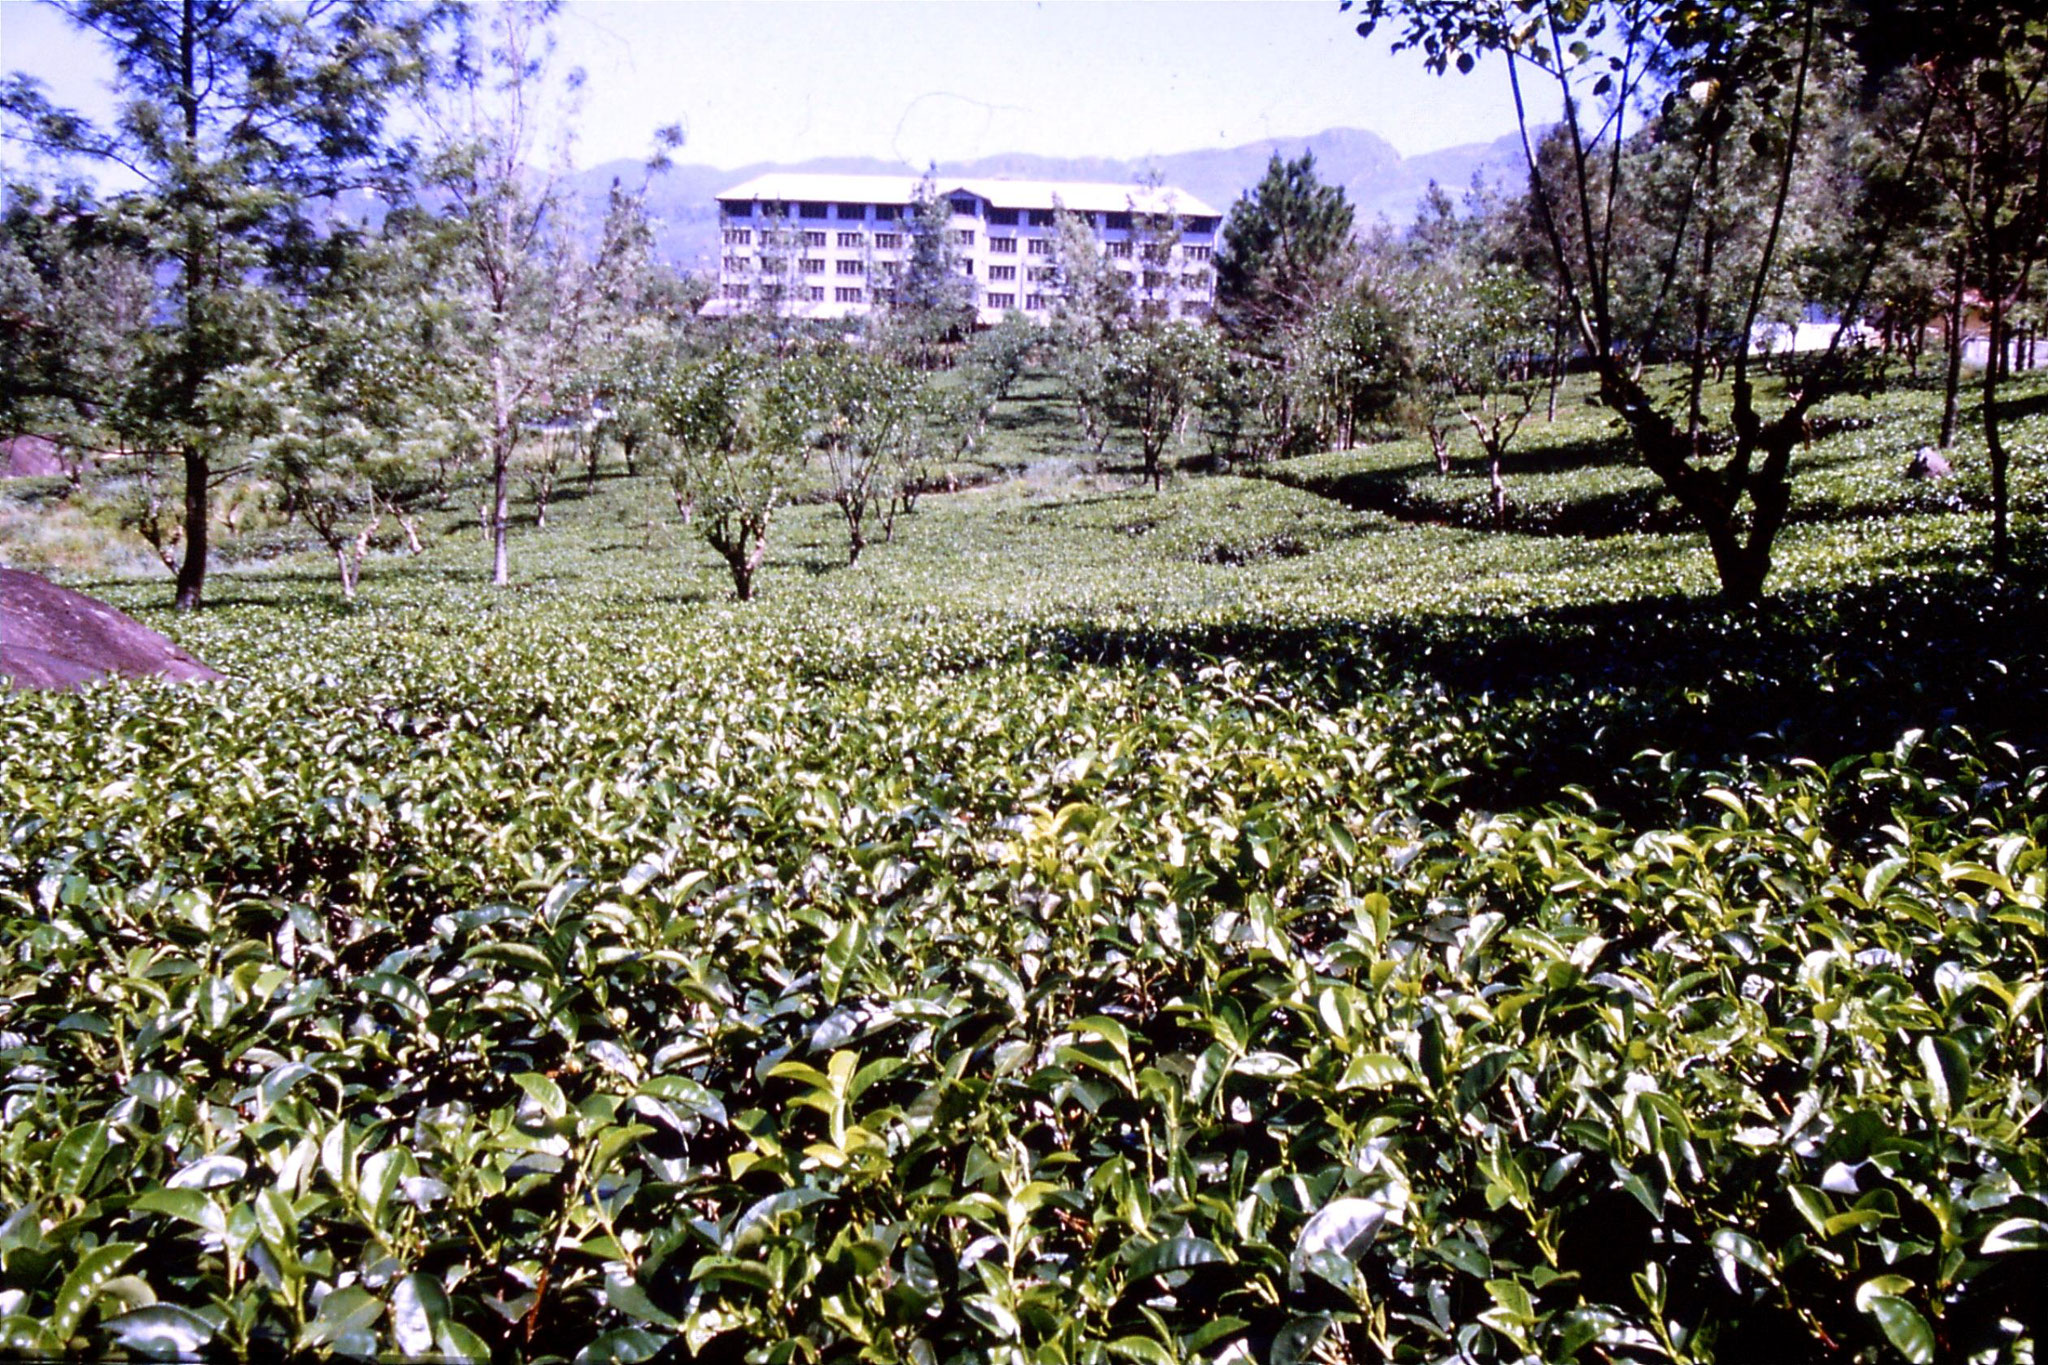 3/2/1990: 6: north of Nuwara Eliya, tea fields